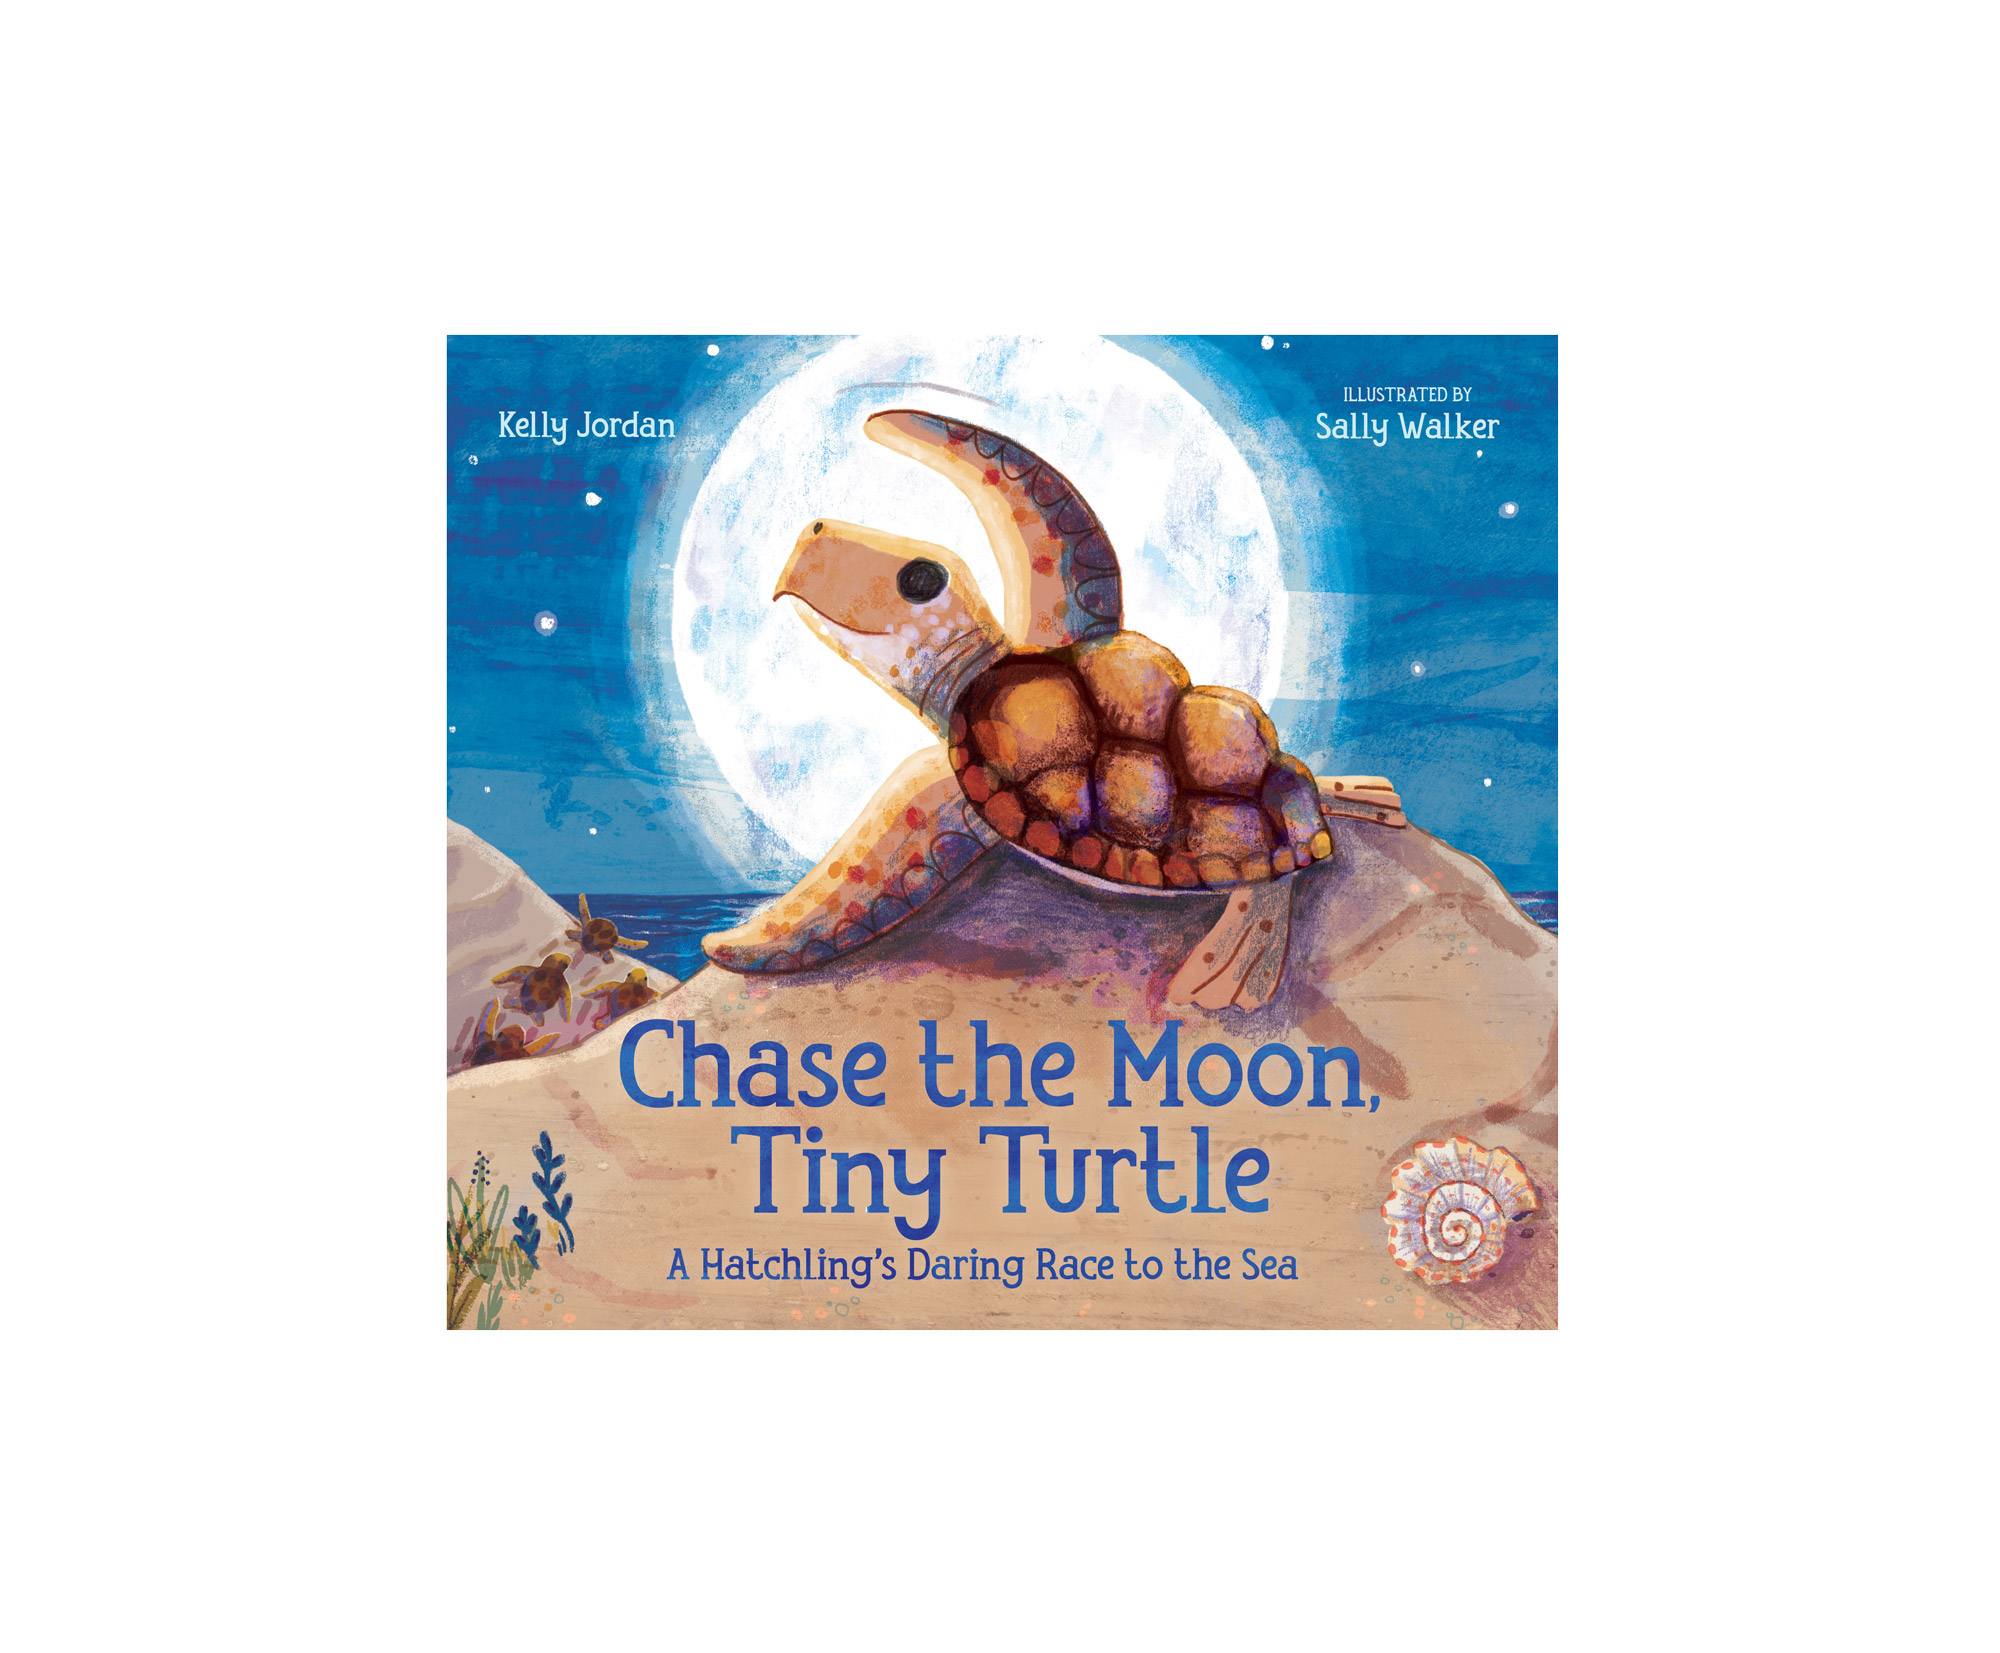 Chase the Moon, Tiny Turtle book cover